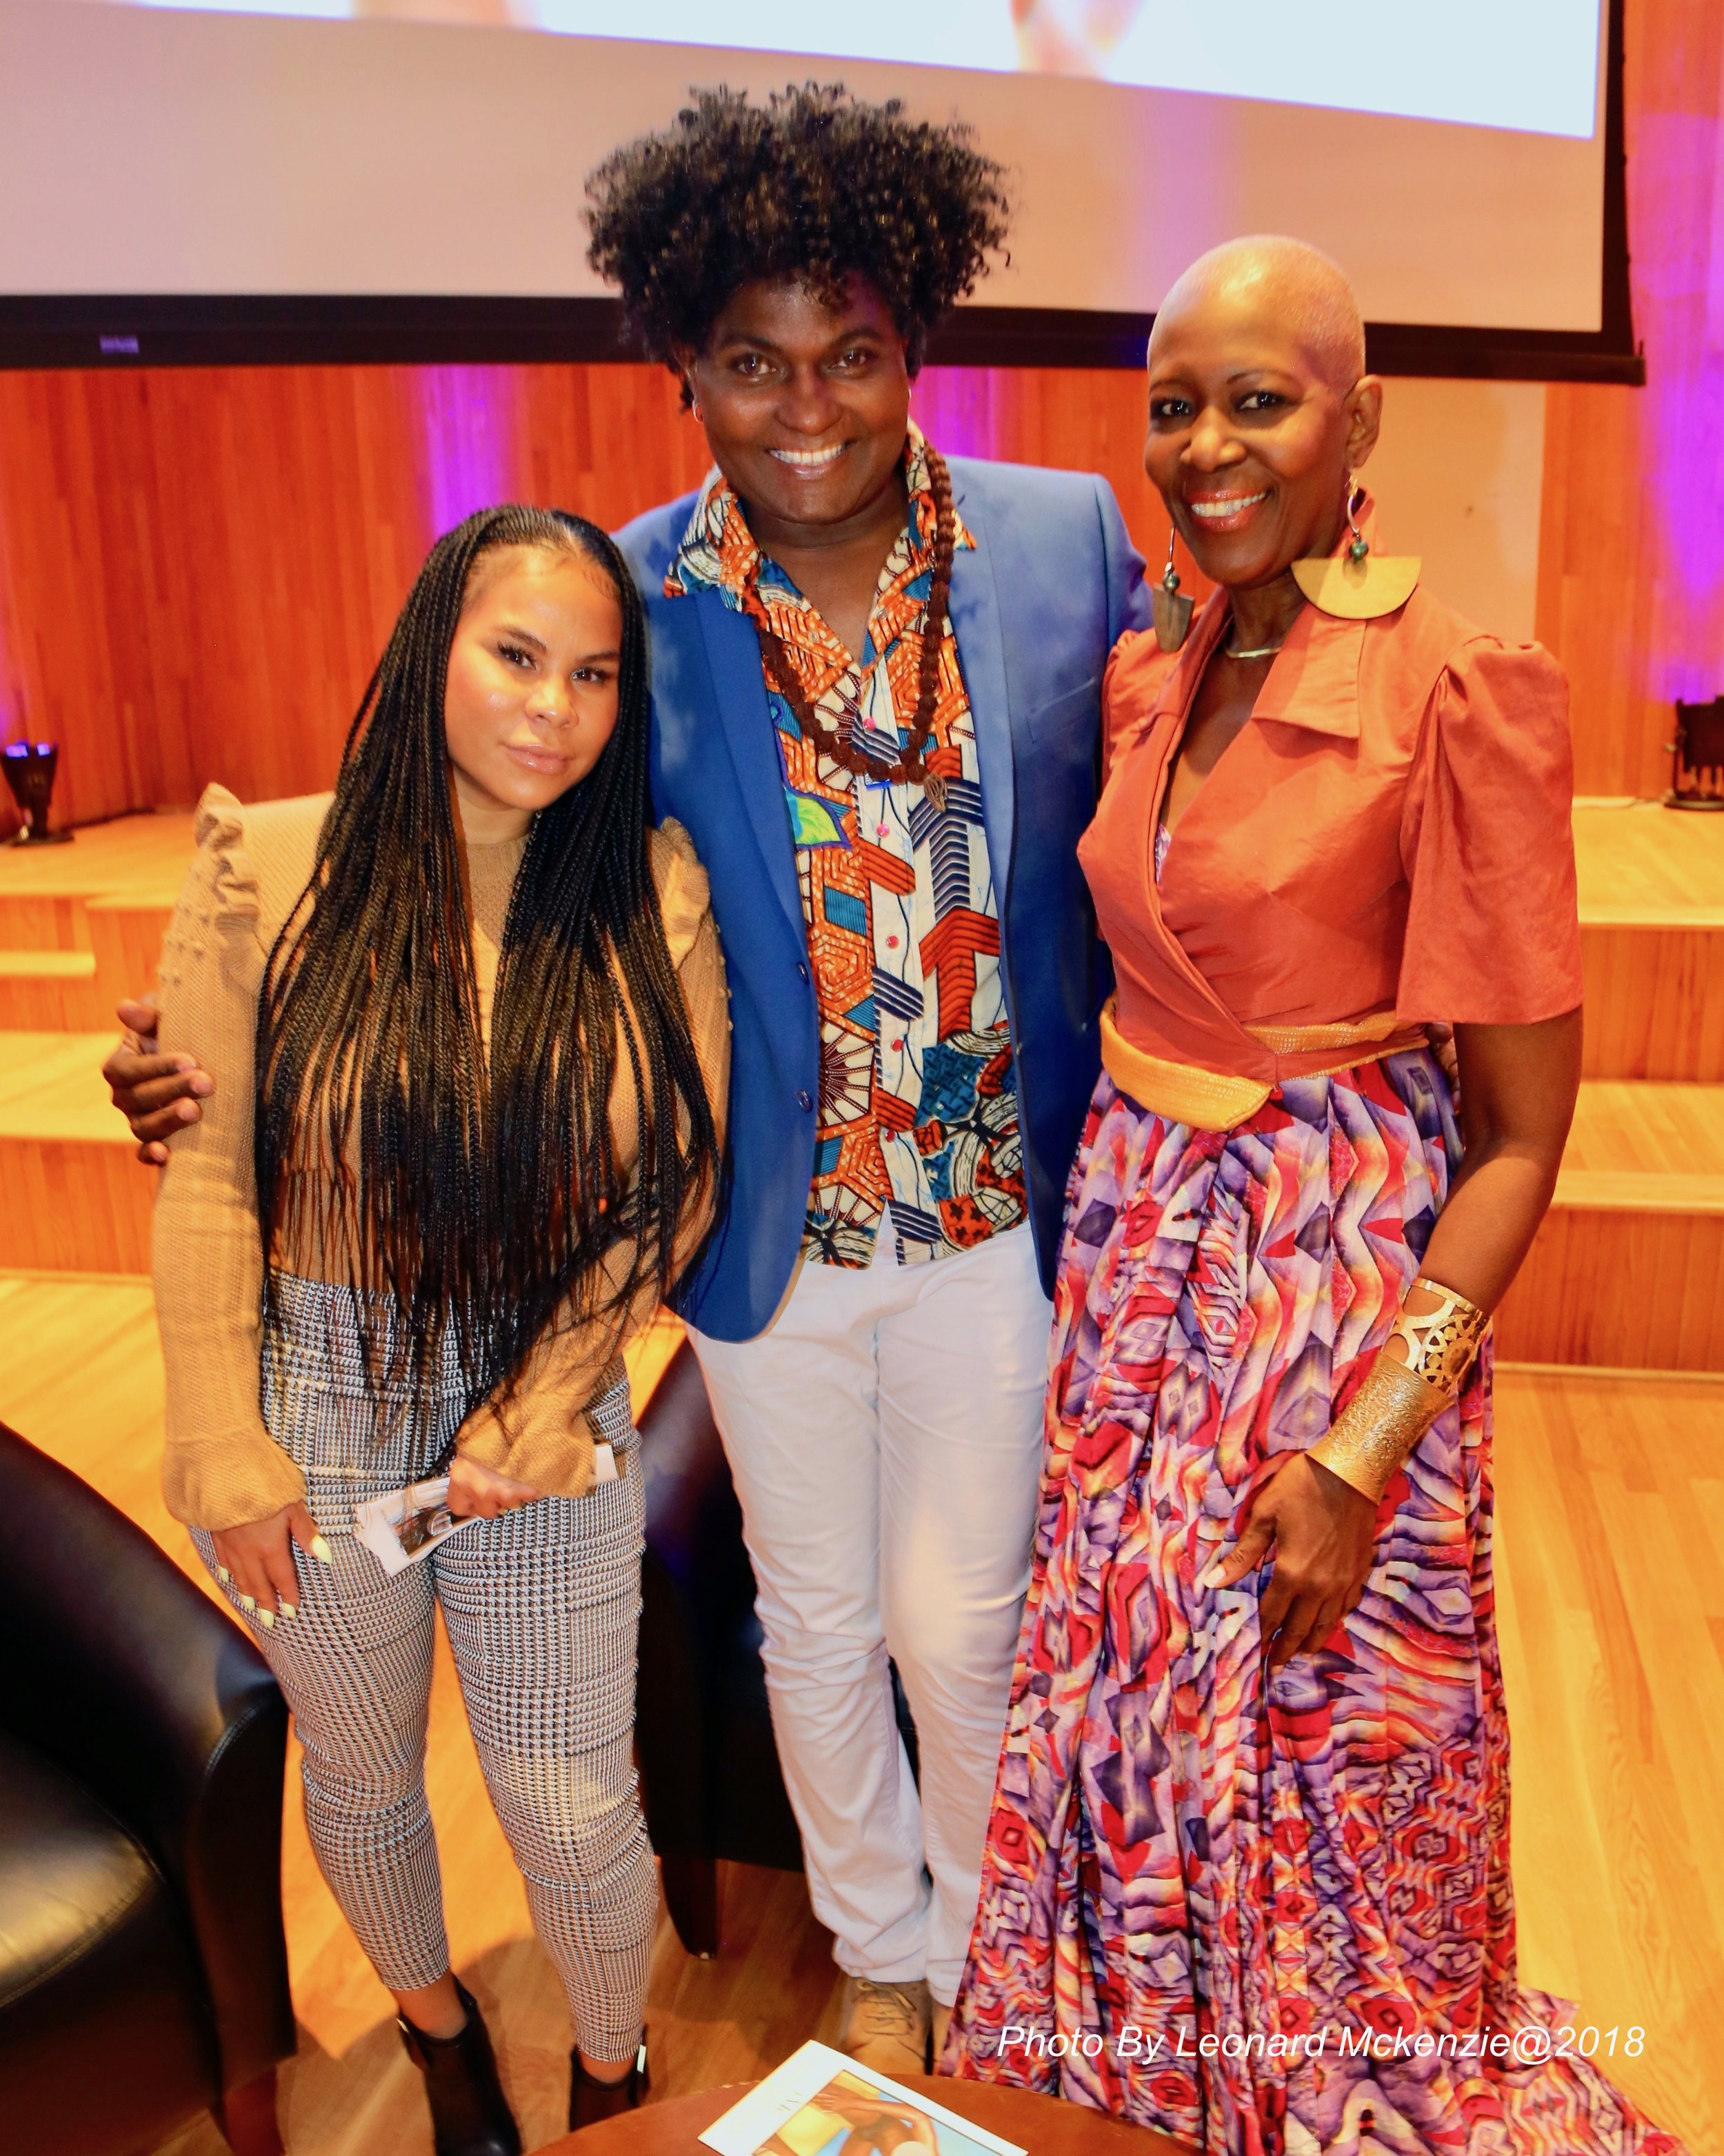 With designer, Nikhol Hing and Richard Young at What is Caribbean Fashion panel discussion at FIT